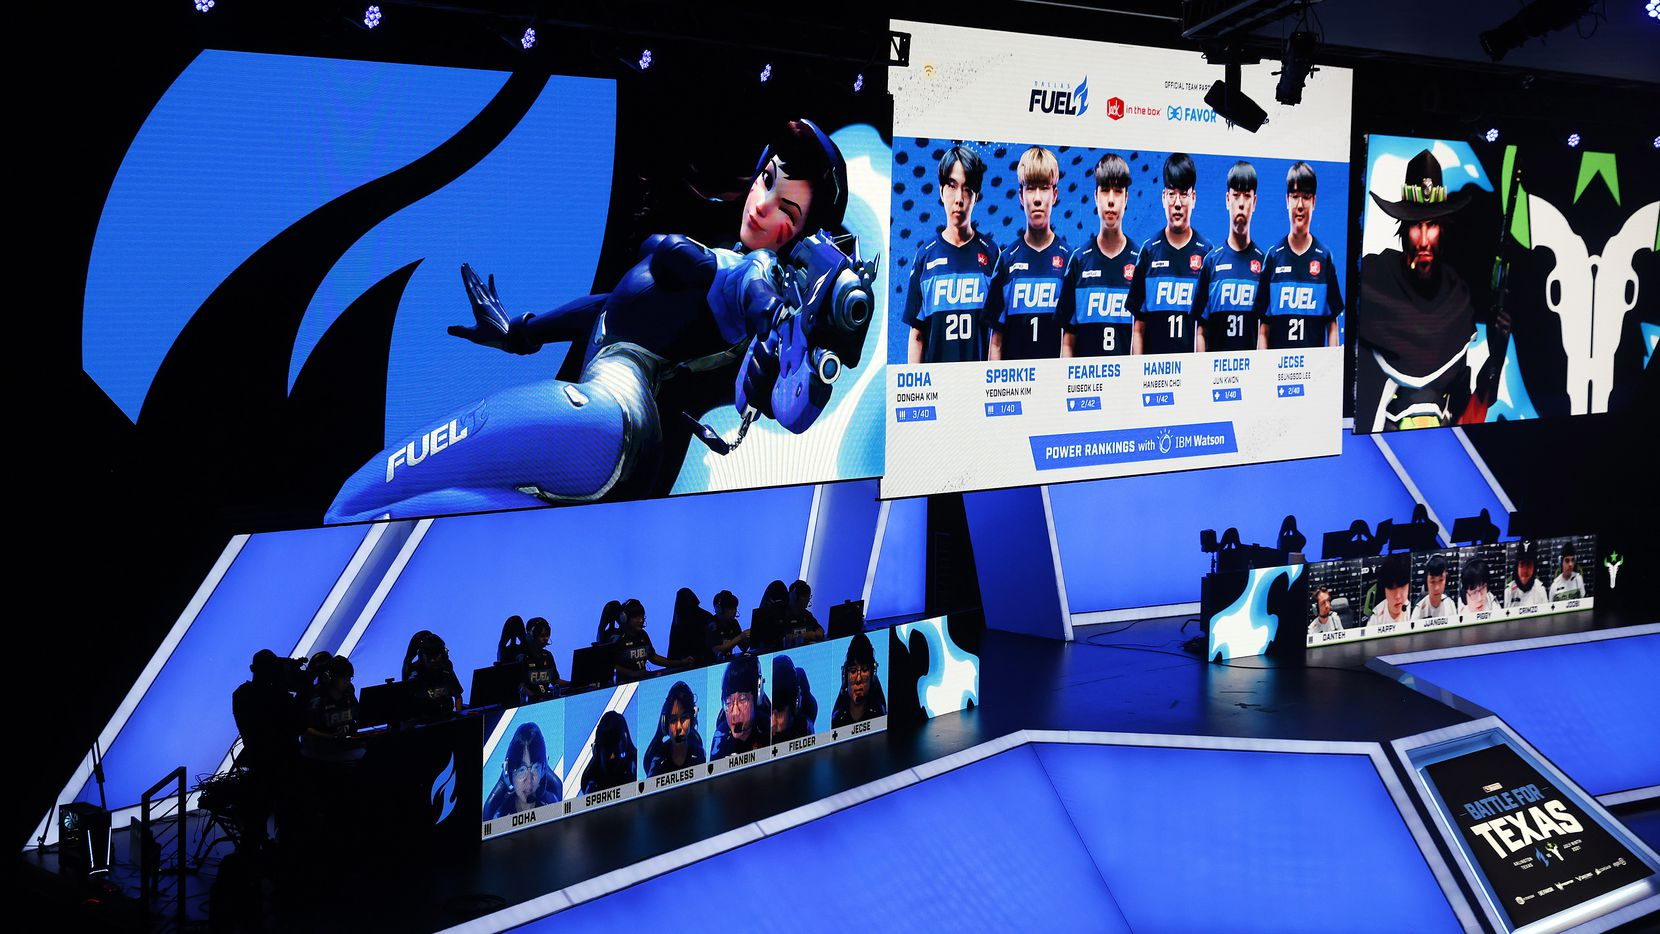 The Dallas Fuel players are introduced on the video board before their Overwatch League match against the Houston Outlaws at Esports Stadium Arlington Friday, July 9, 2021. Dallas Fuel defeated Houston in The Battle for Texas, 3-0. It was the first in-person live competition for fans in over a year. Houston competed from their hometown. (Tom Fox/The Dallas Morning News)